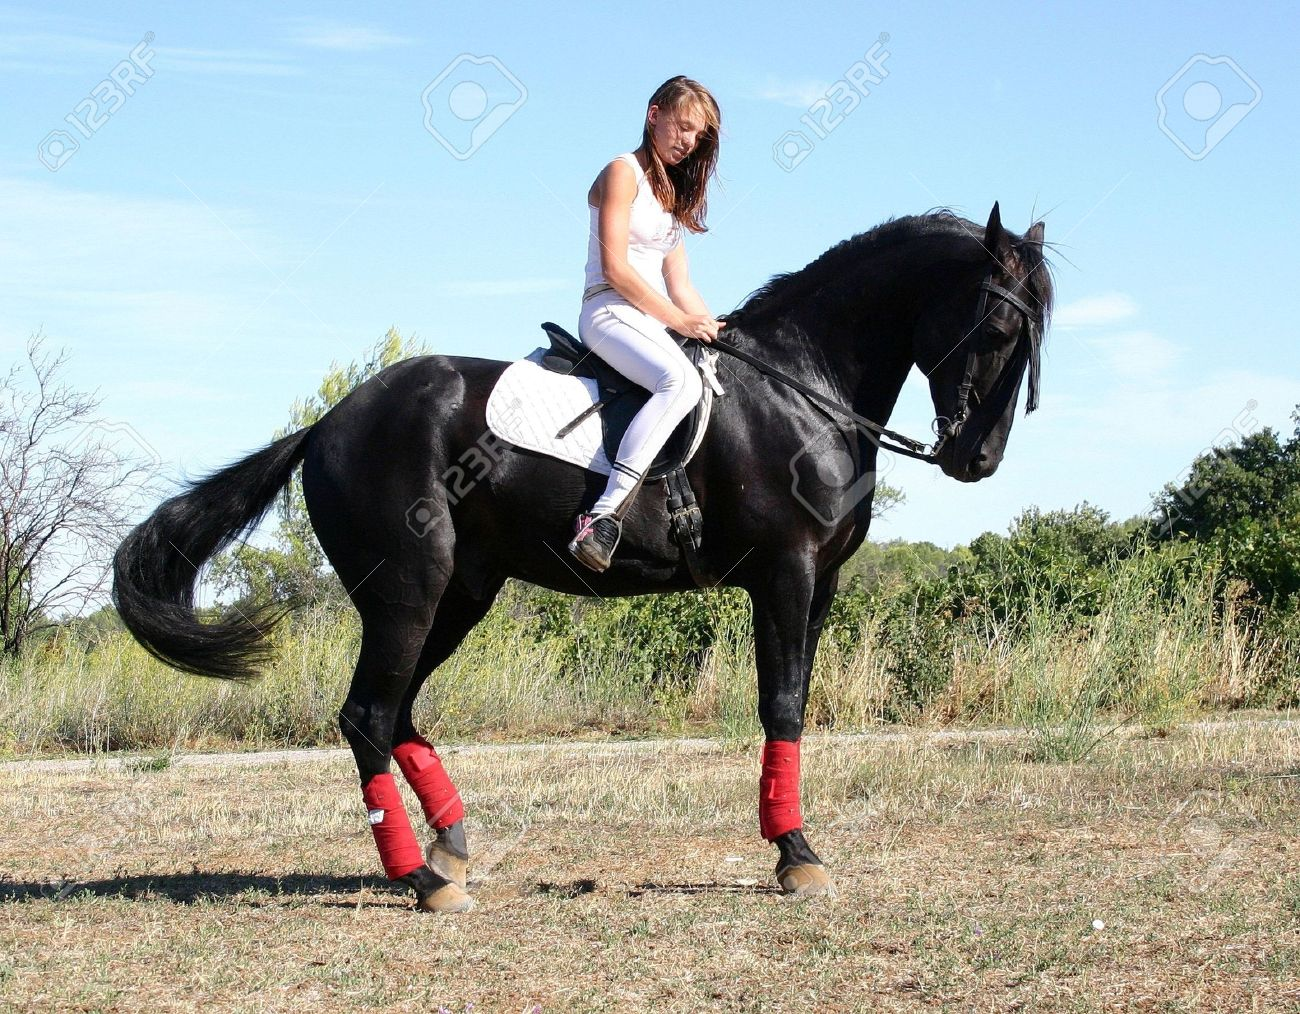 Riding Woman And Black Stallion Stock Photo Picture And Royalty Free Image Image 663870